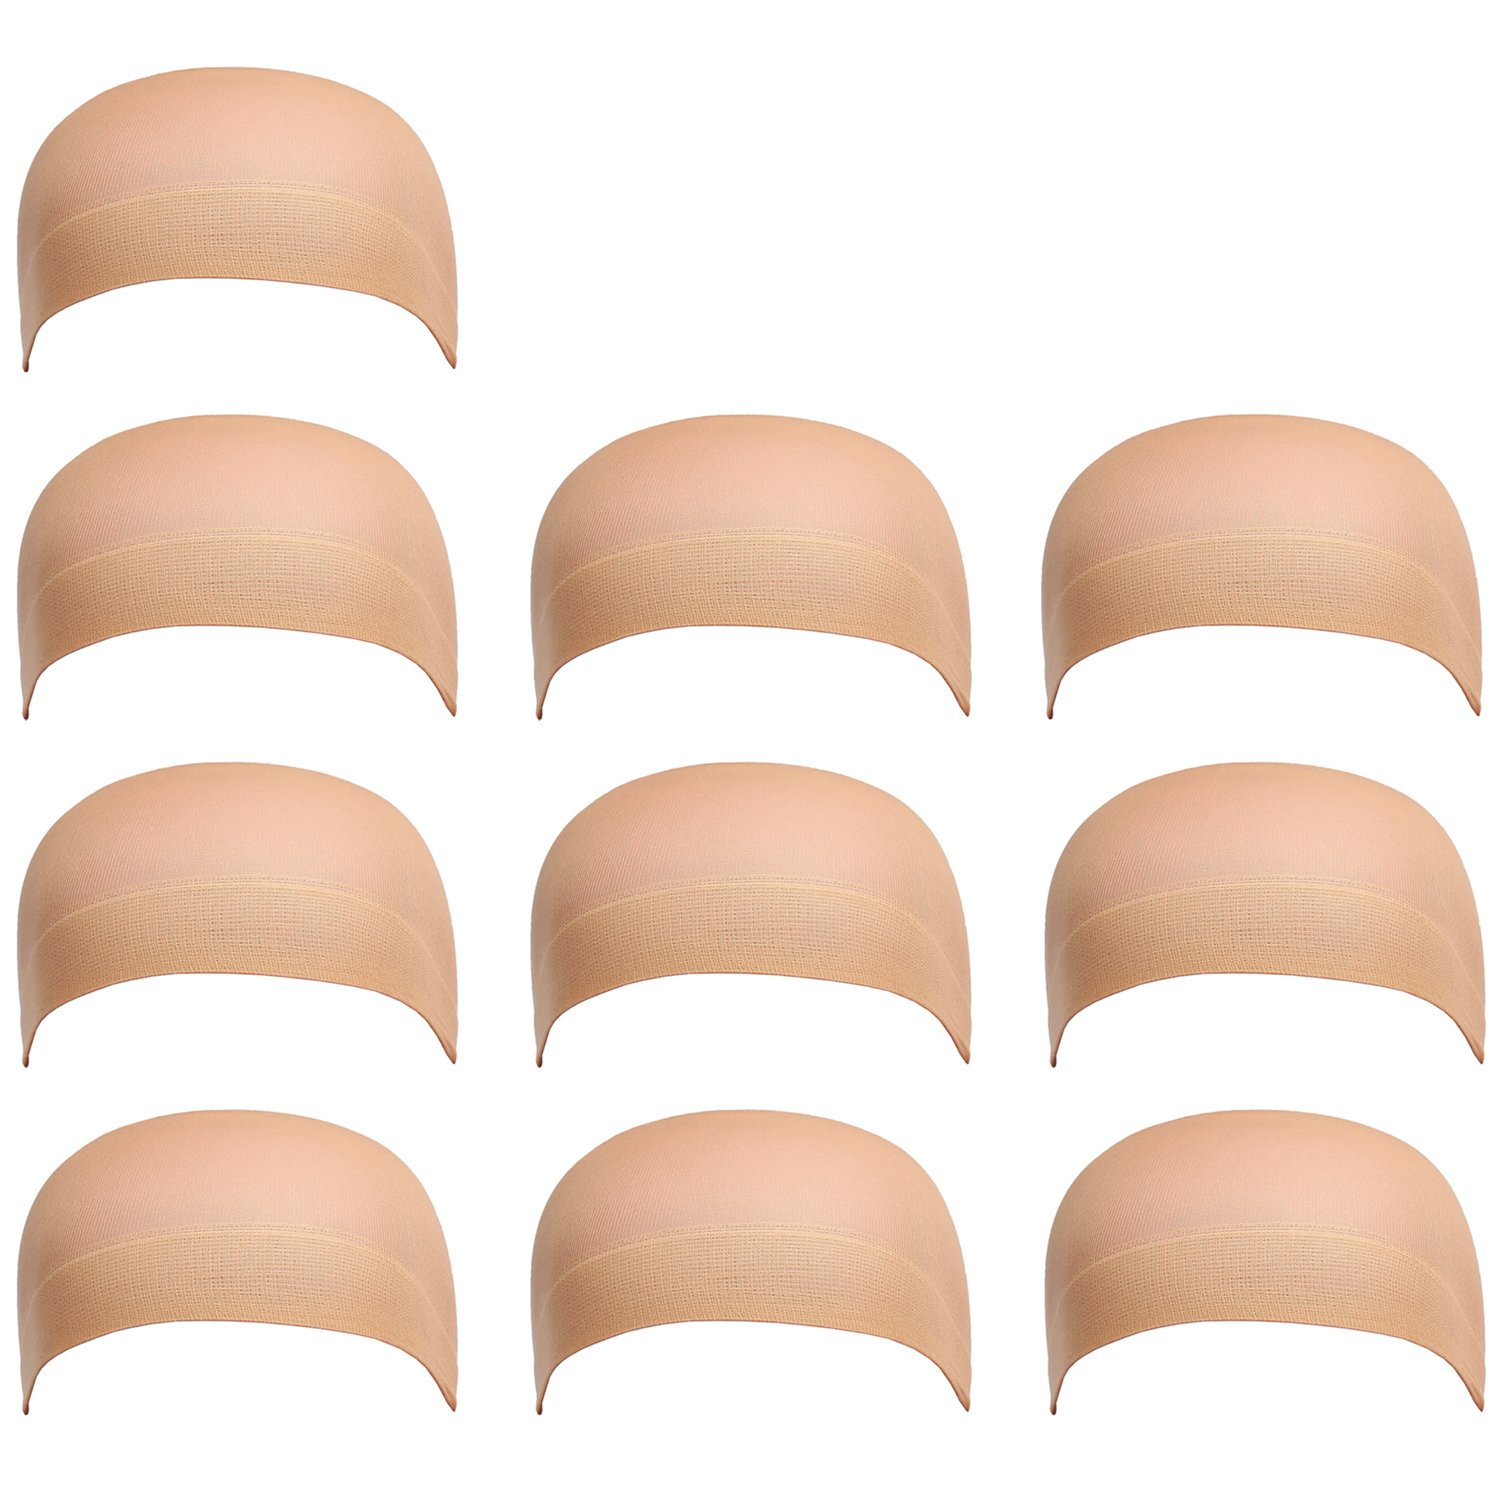 10 Pack Dreamlover Beige Stocking Wig Caps, Flesh Color Stretchy Nylon Close End Wig Caps, Each Paper Board Contains 2 Wig Caps (Beige)